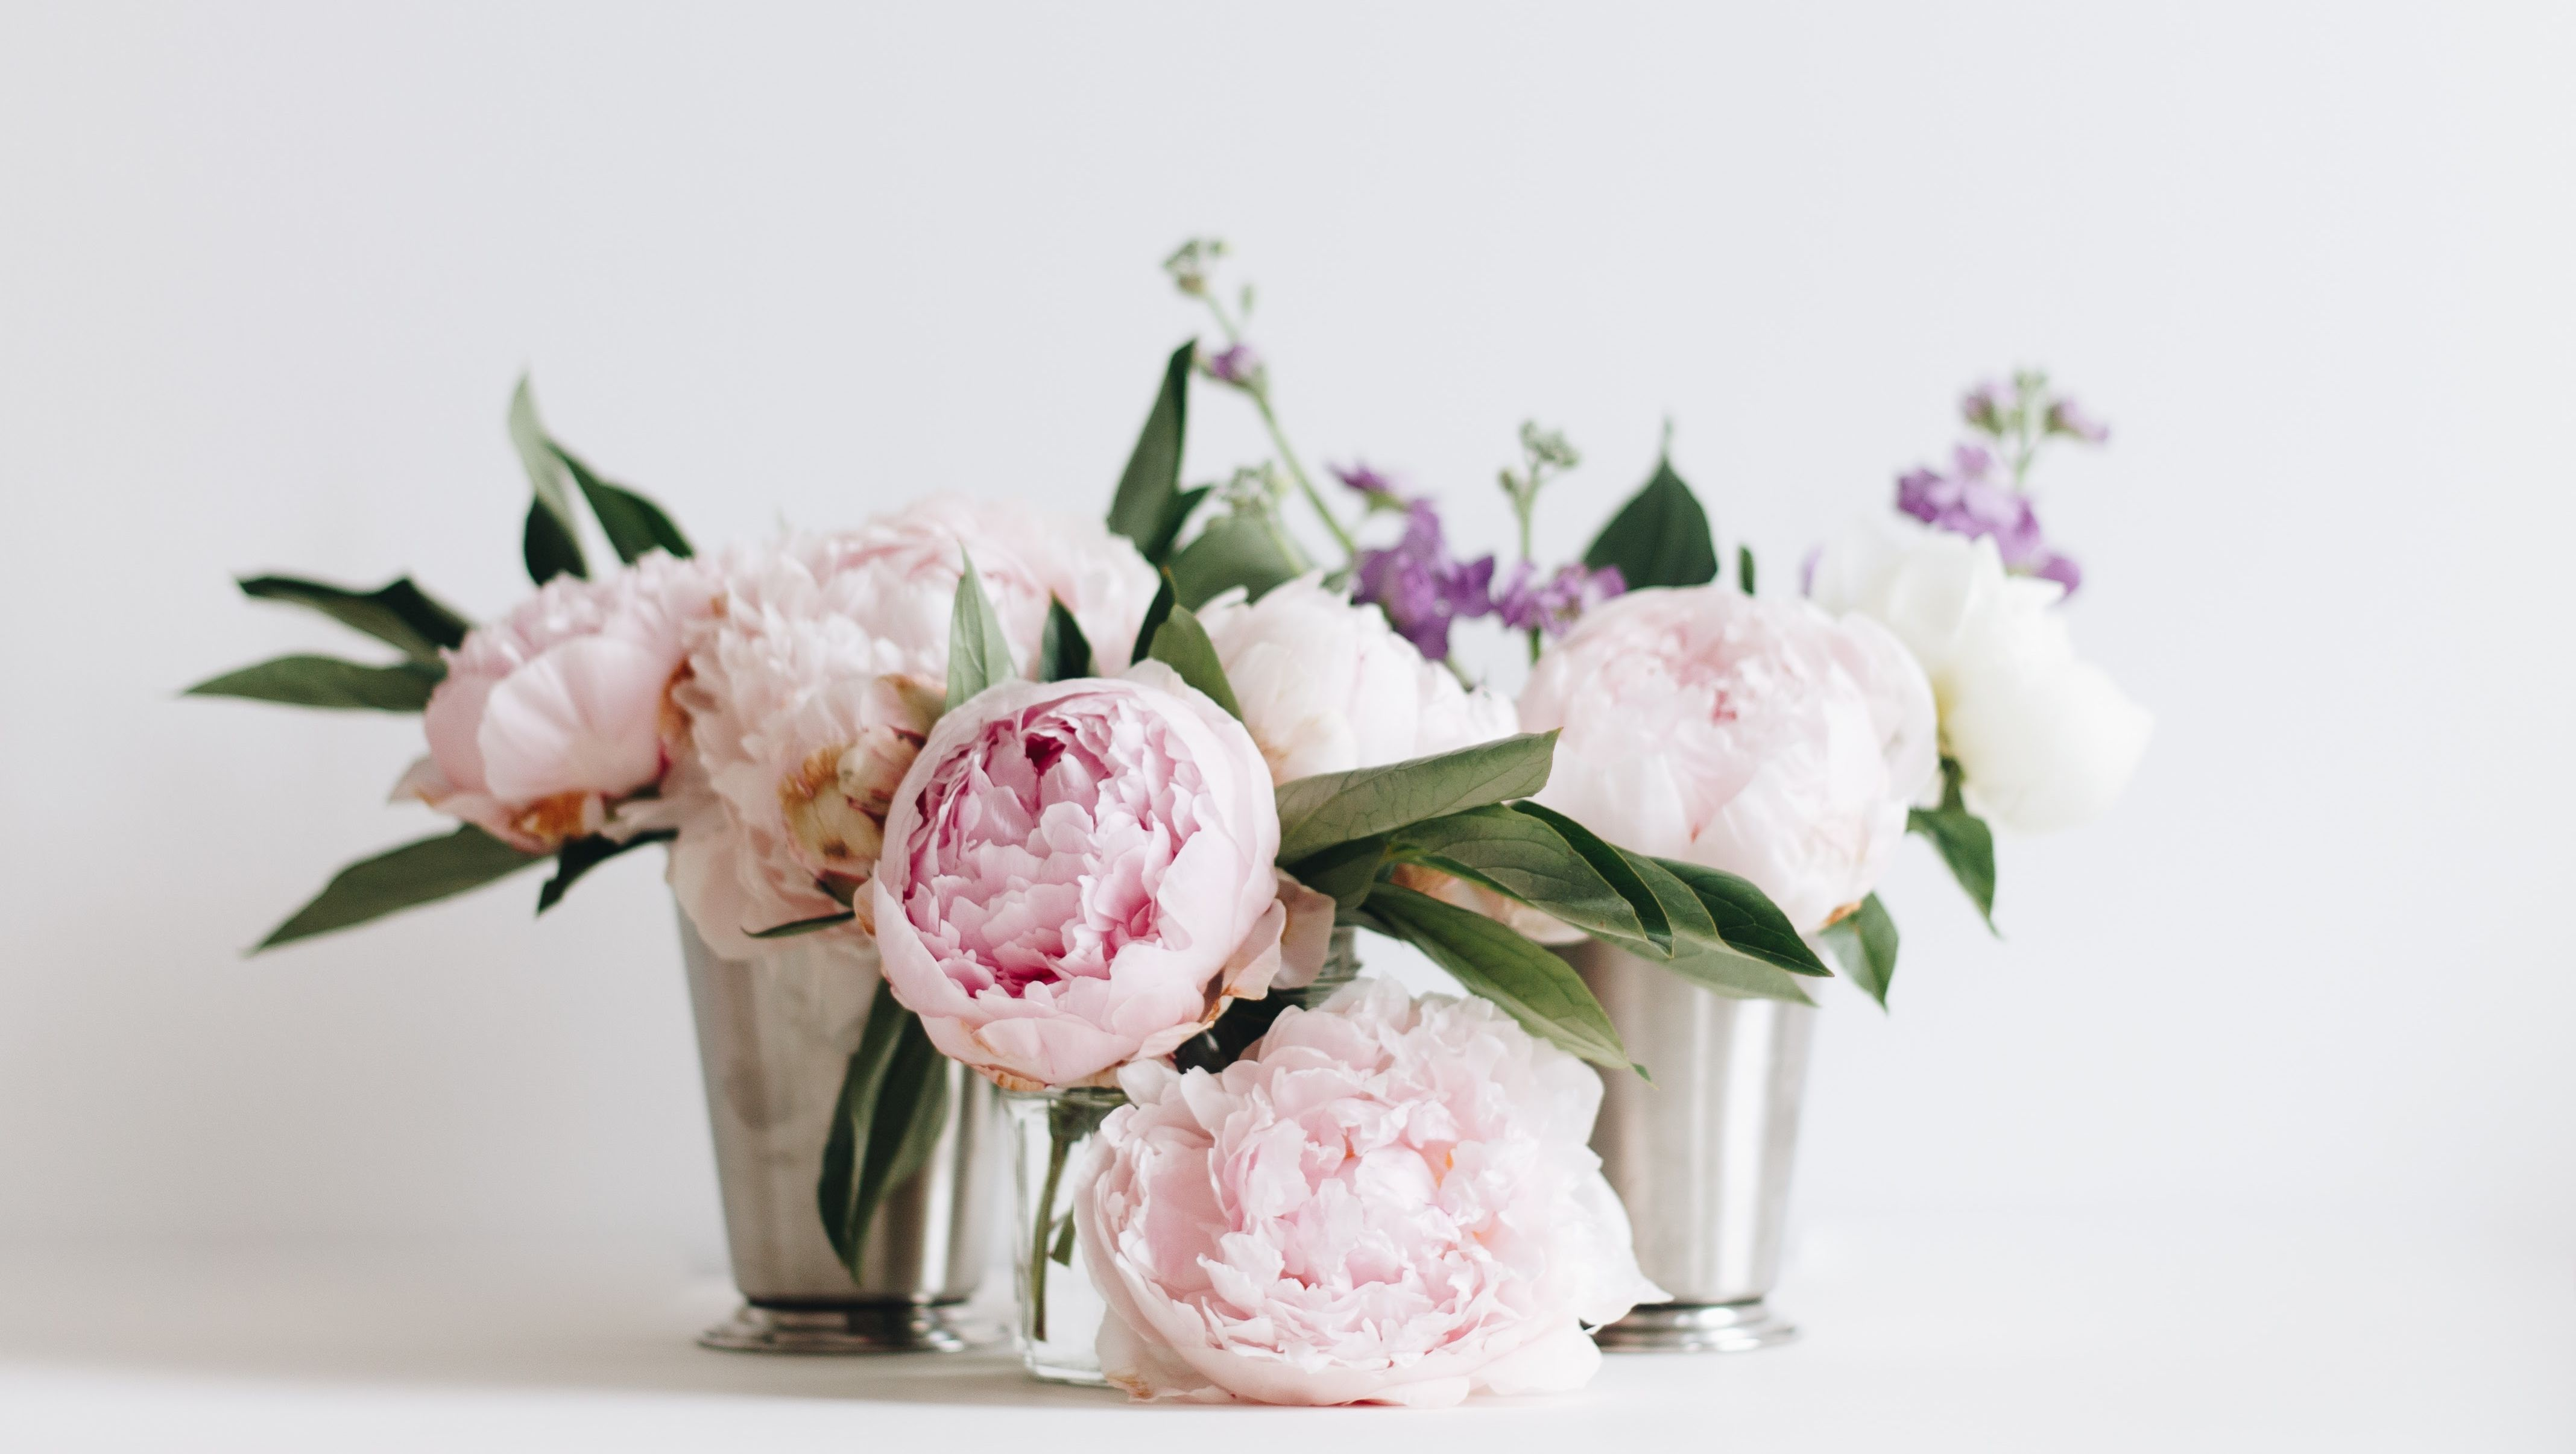 The 7 flower arranging trends to try in 2019, according to Bloom & Wild